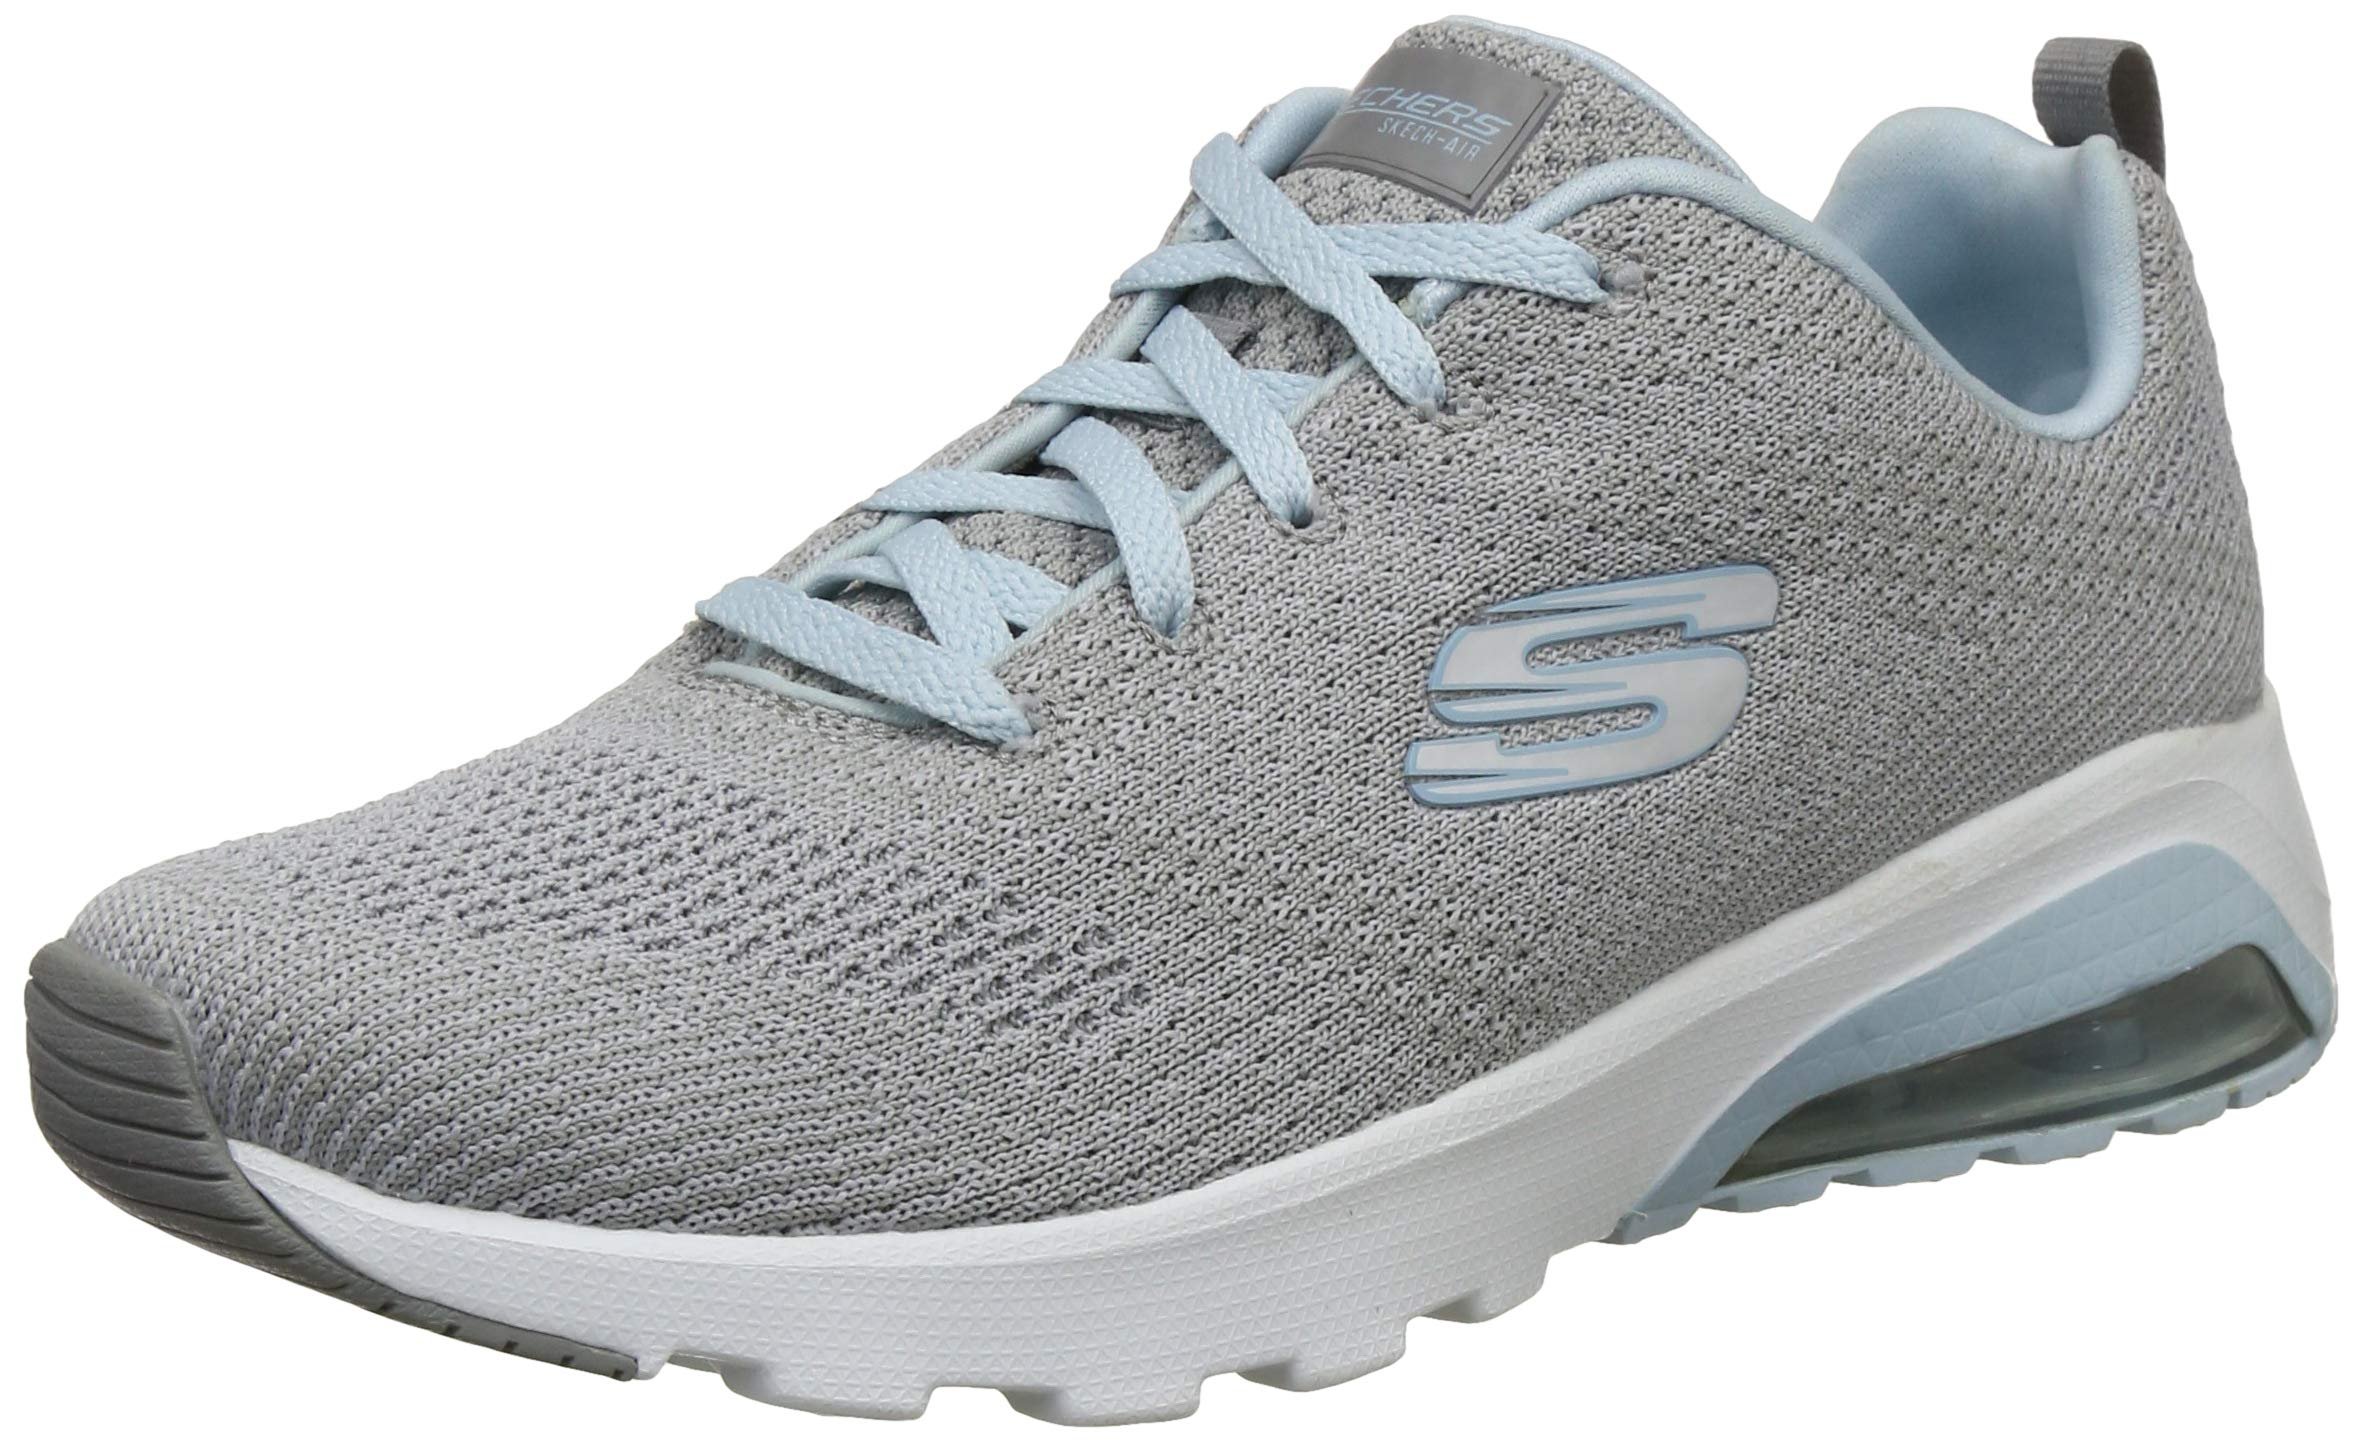 Skechers Women's Skech-Air Extreme-Not Alo Sneakers